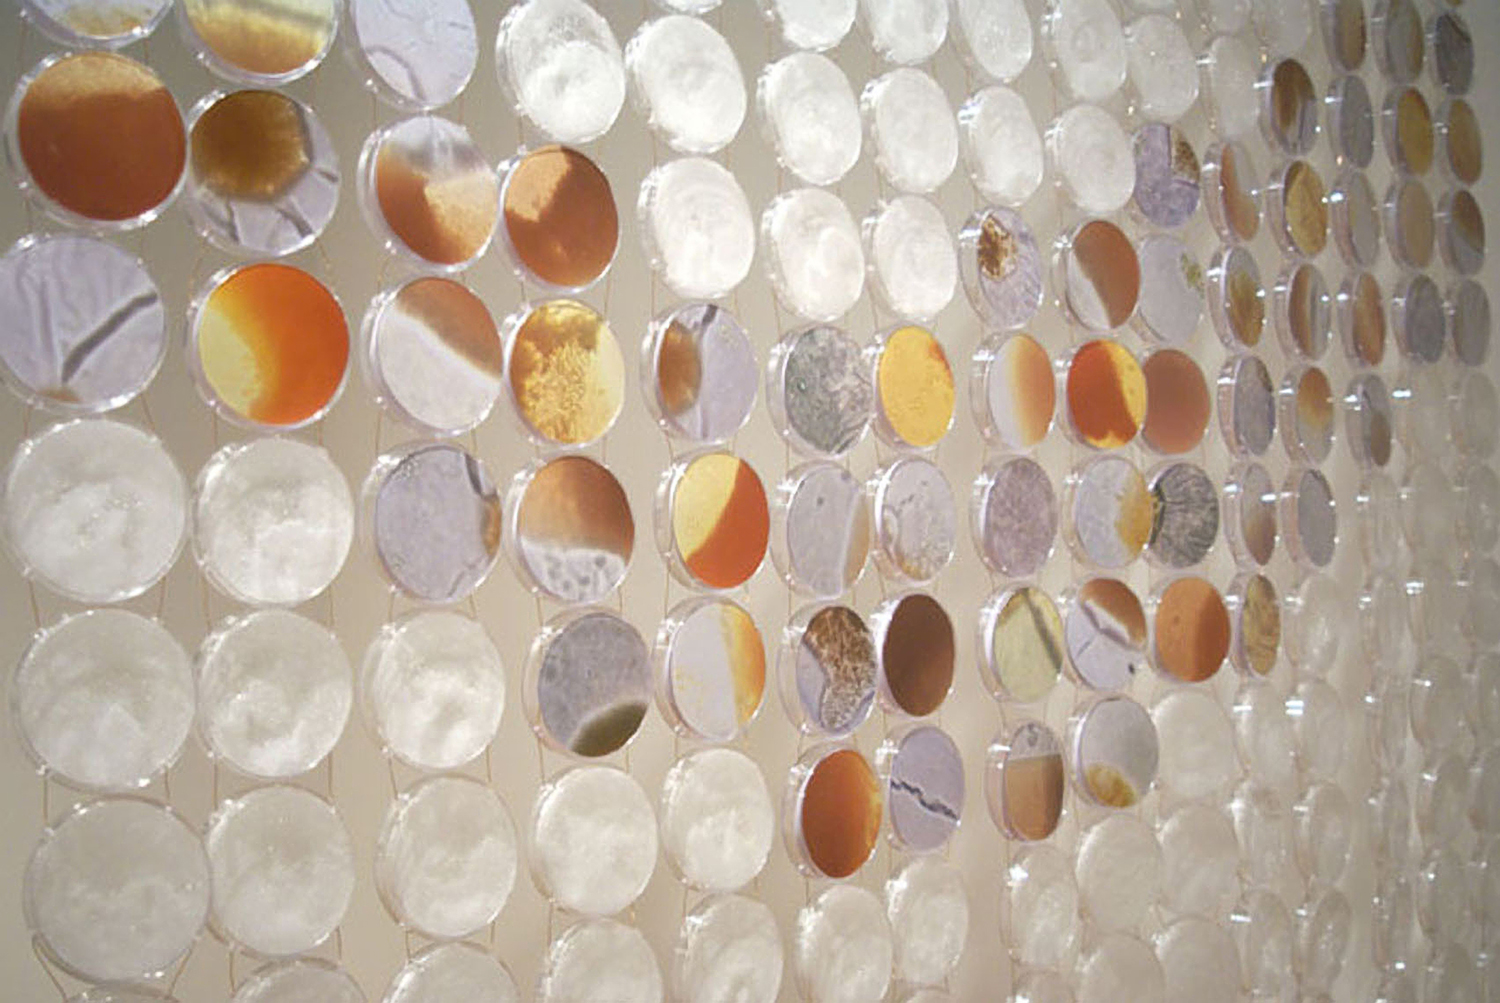 Biotectonics (detail)   Petri dishes (over 1500), grown salt crystals, microscopy digital images on paper of  Halobacterium sp. NRC- 1  21' x 7.5'  2010